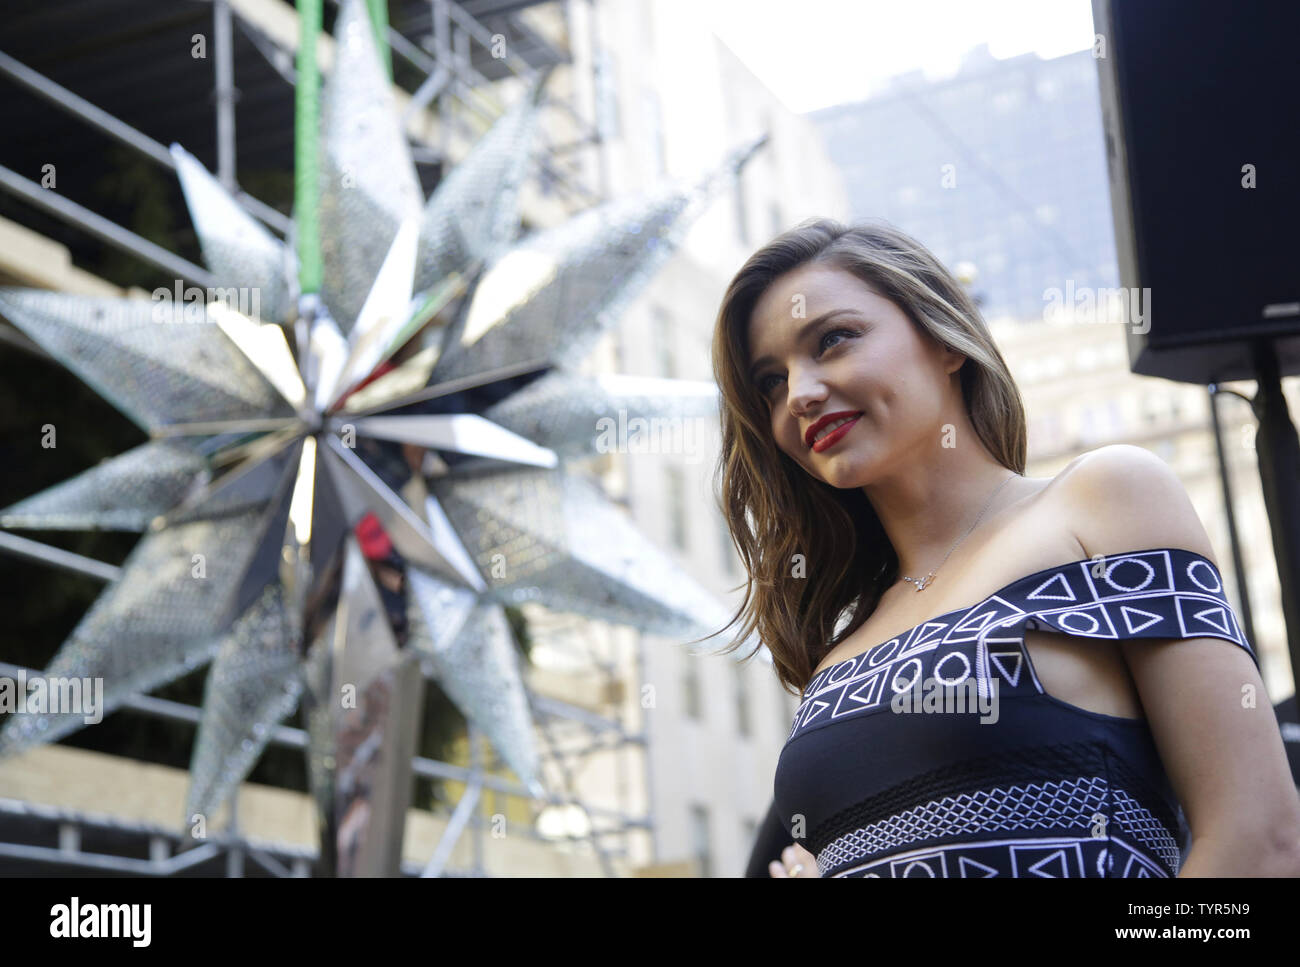 Super Model Miranda Kerr stands with the Swarovski Star before it is raised to the top of the world-famous Rockefeller Center Christmas tree on November 16, 2015 in New York City. 2015 marks the 12th year the Swarovski Star will adorn the Rockefeller Center Christmas tree. The Star is comprised of 25,000 crystals, with one million facets, and measures 9 and 1/2 feet in diameter and 1 1/2 feet deep. The Star weighs 550 pounds, including 300 pounds of crystal panels, and is composed of six outer rays and six smaller inner rays.       Photo by John Angelillo/UPI Stock Photo